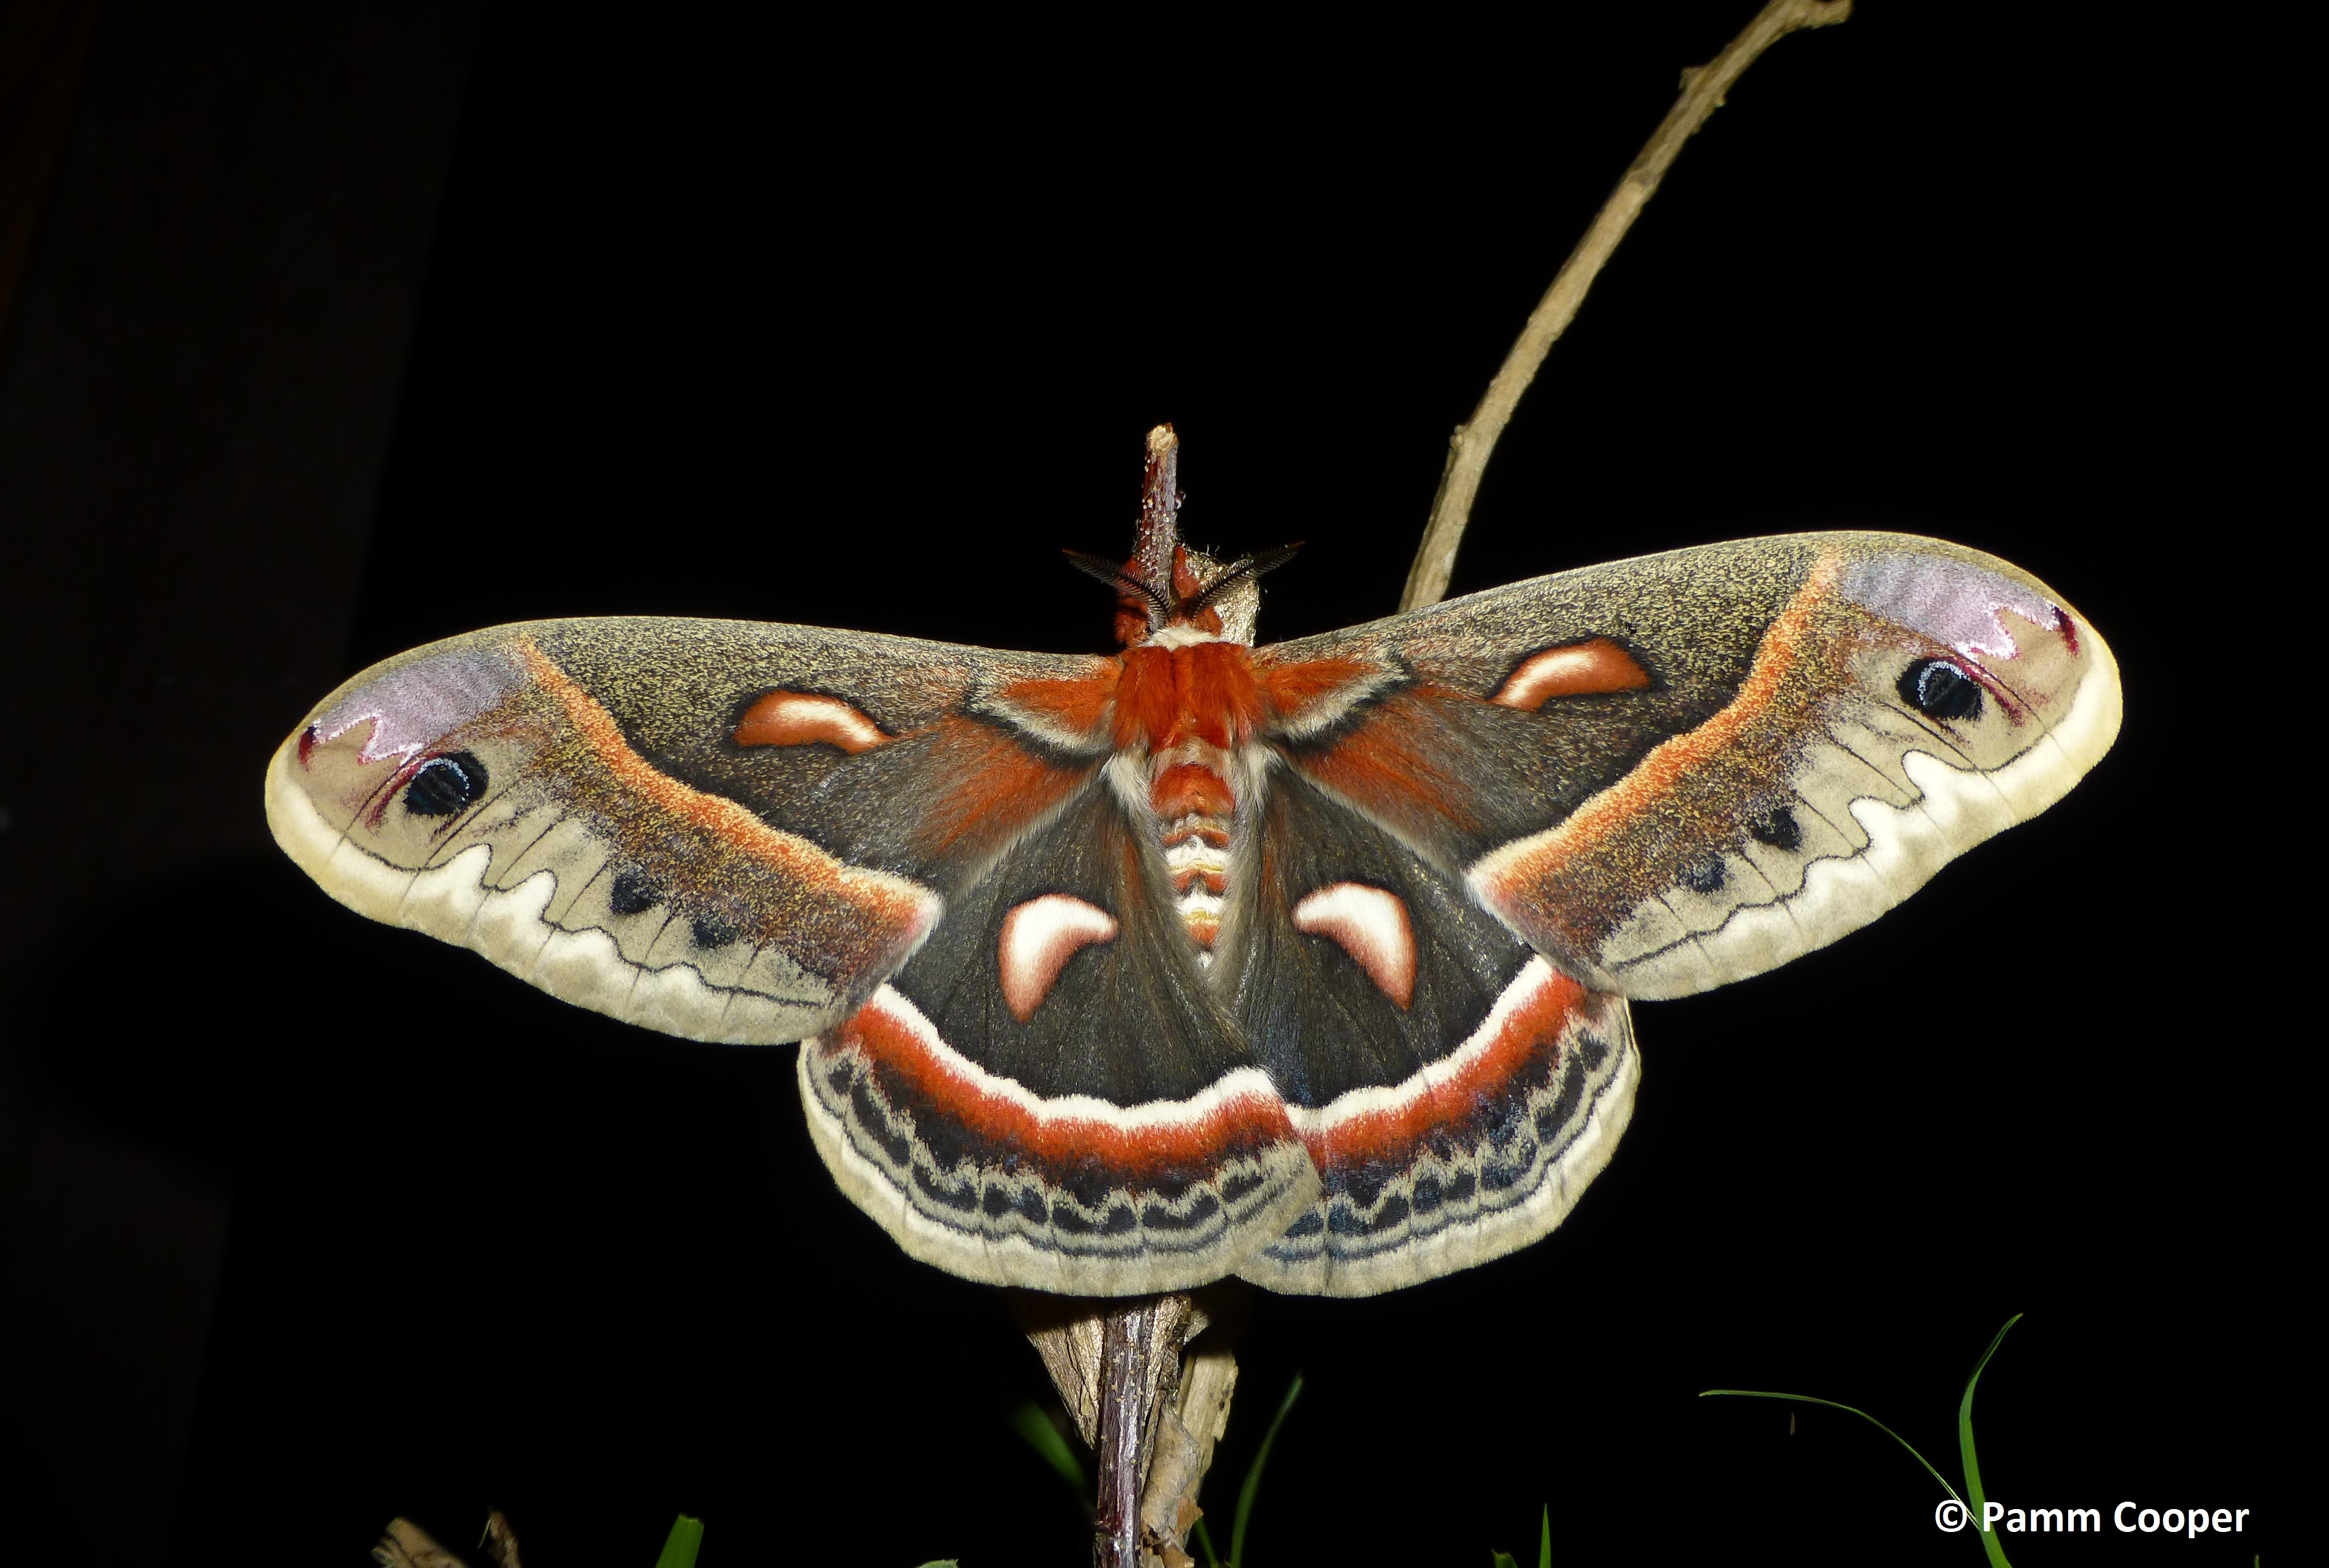 cecropia female 9p.m. same day as emrged from cocoon 5-31-13